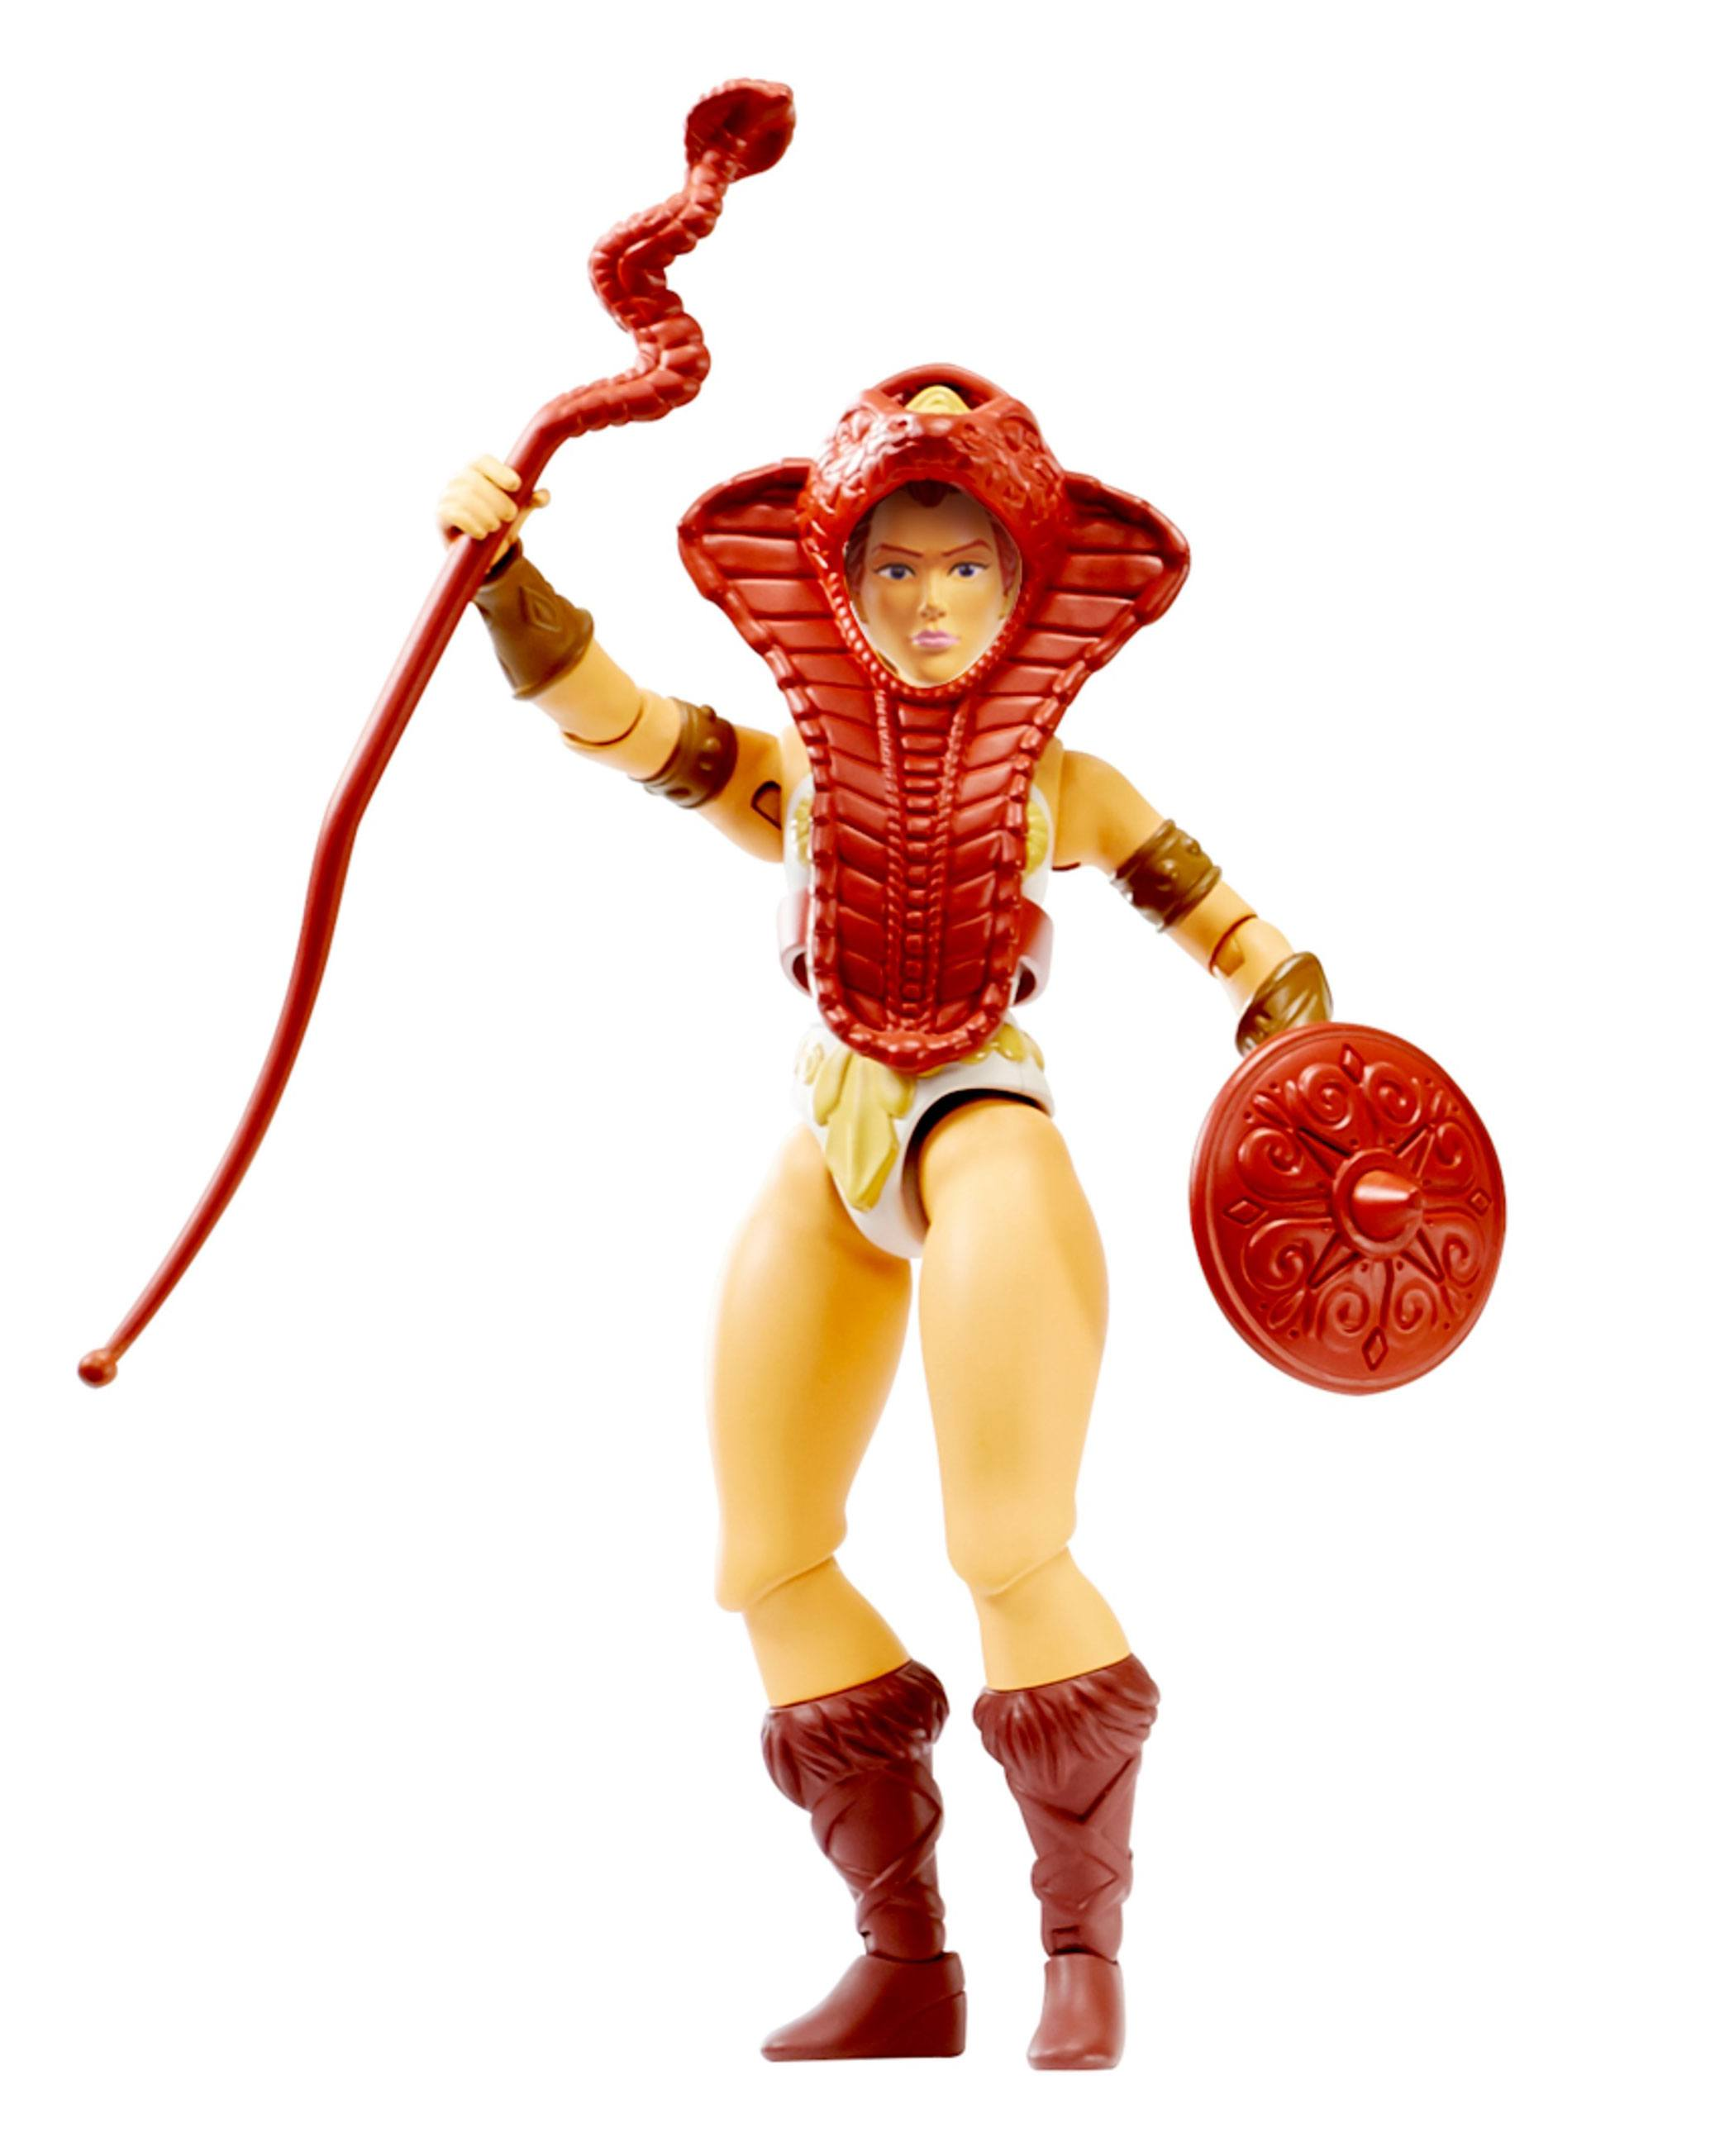 New for 20 Masters of the Universe Origins Actionfigur 2020 Teela 14 cm MATTGNN91 0887961875430